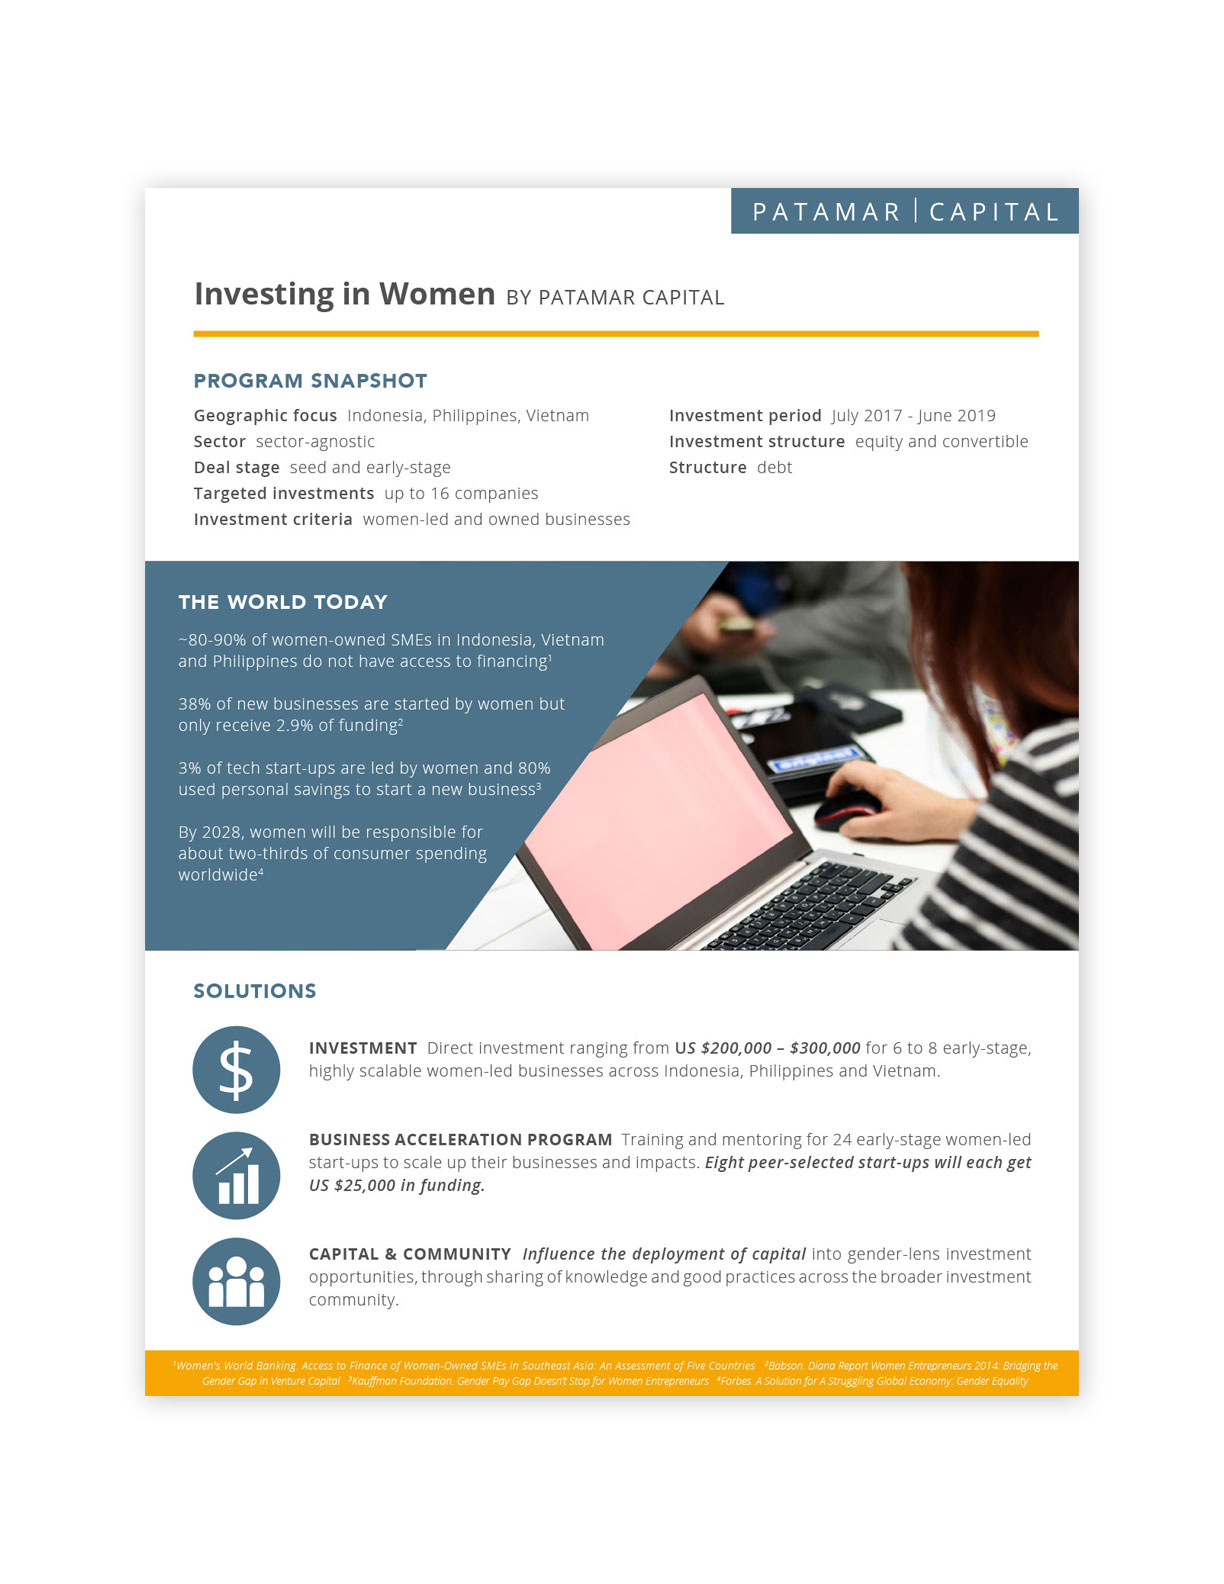 Investing-in-Women-2-Page1.jpg